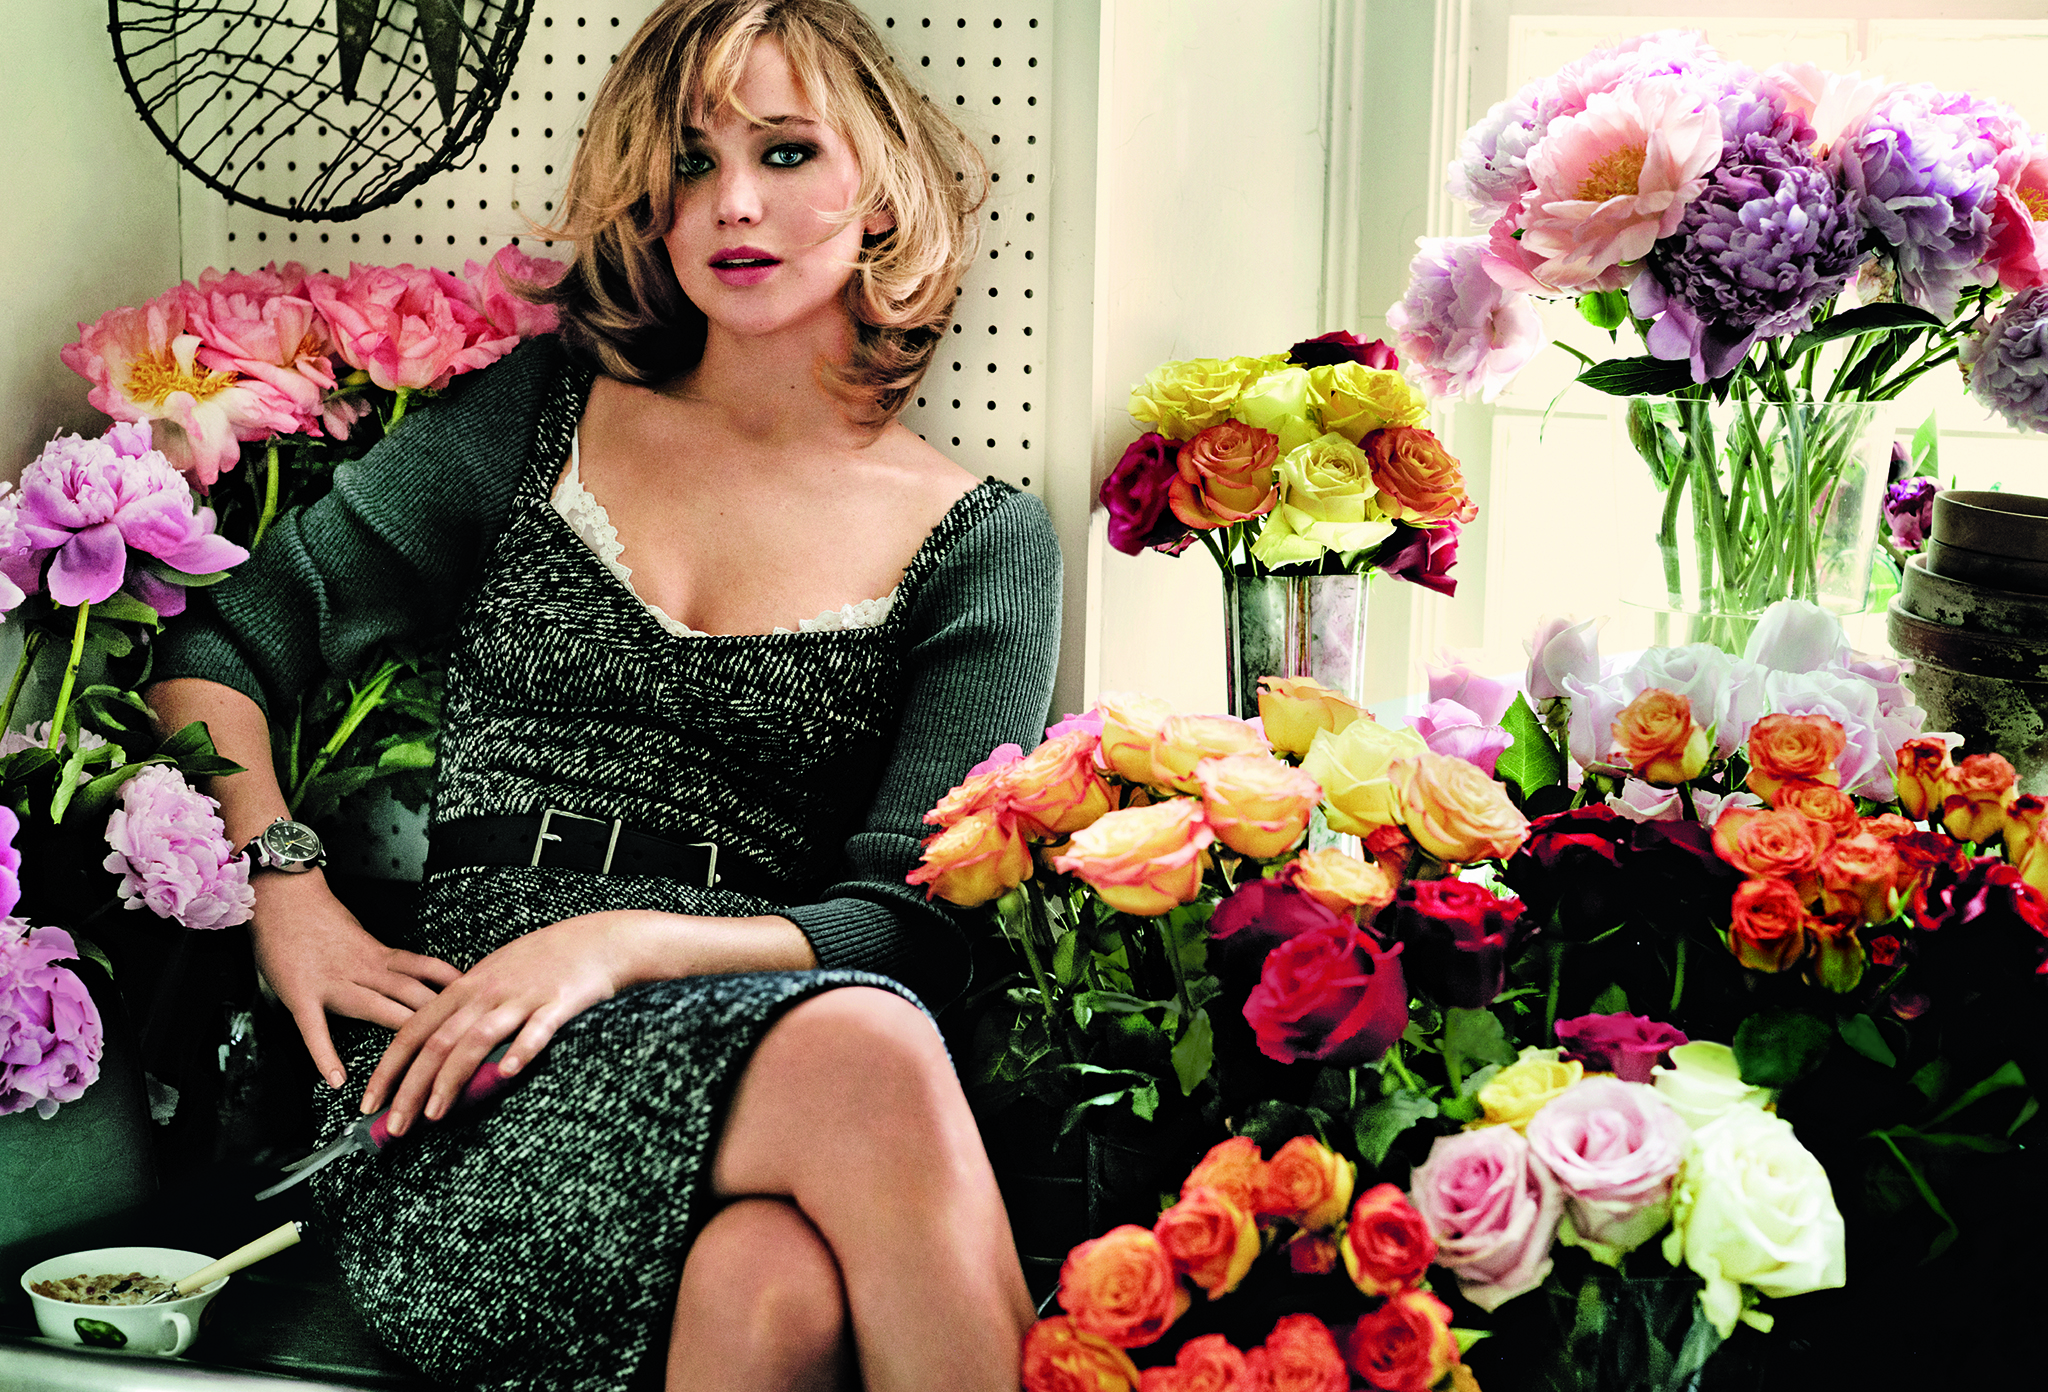 Jennifer Lawrence in the September issue of Vogue (VOGUE)